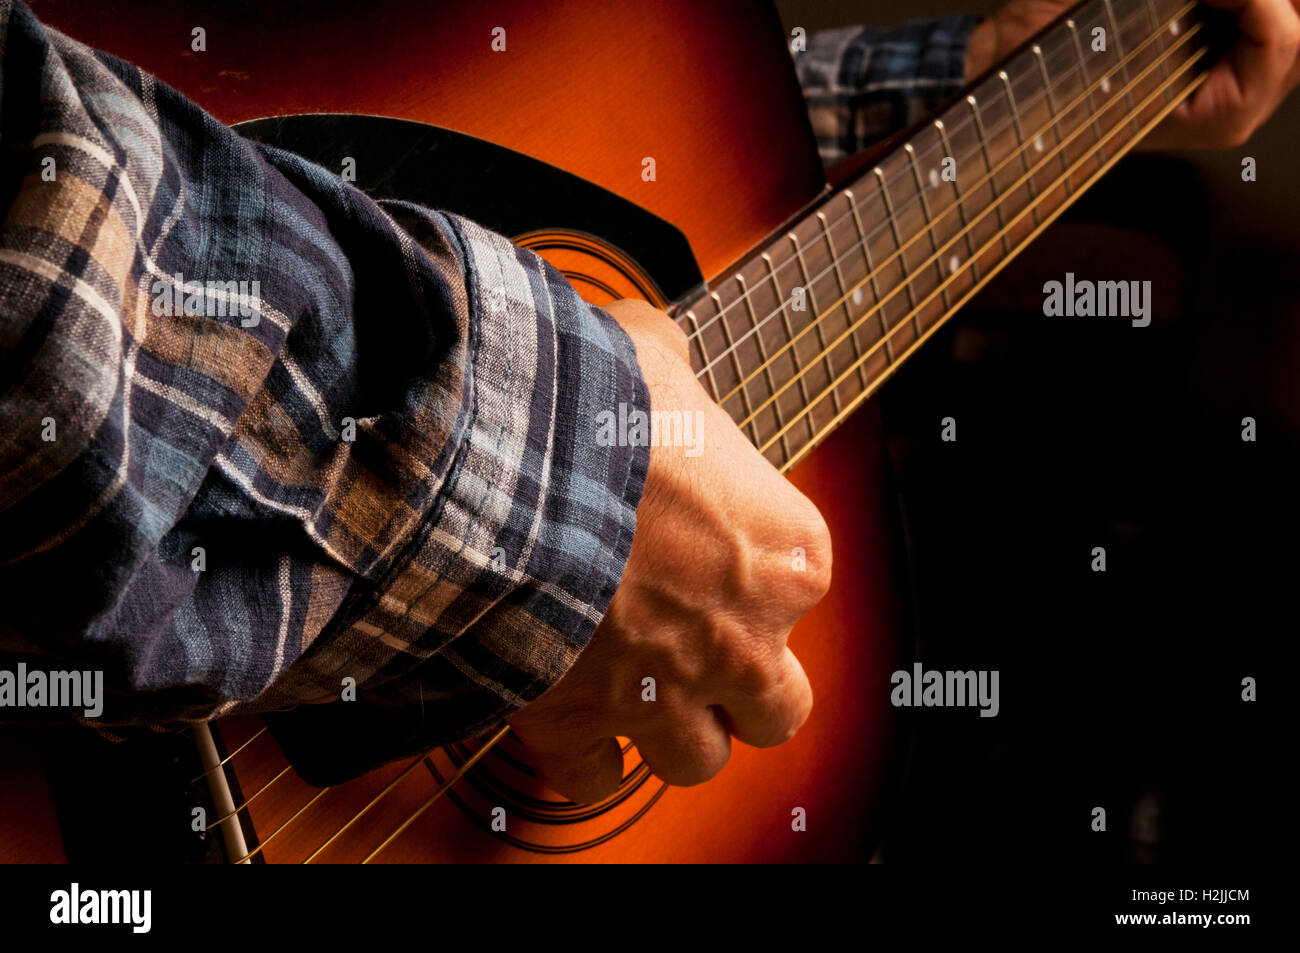 male guitarist playing an acoustic guitar - Stock Image